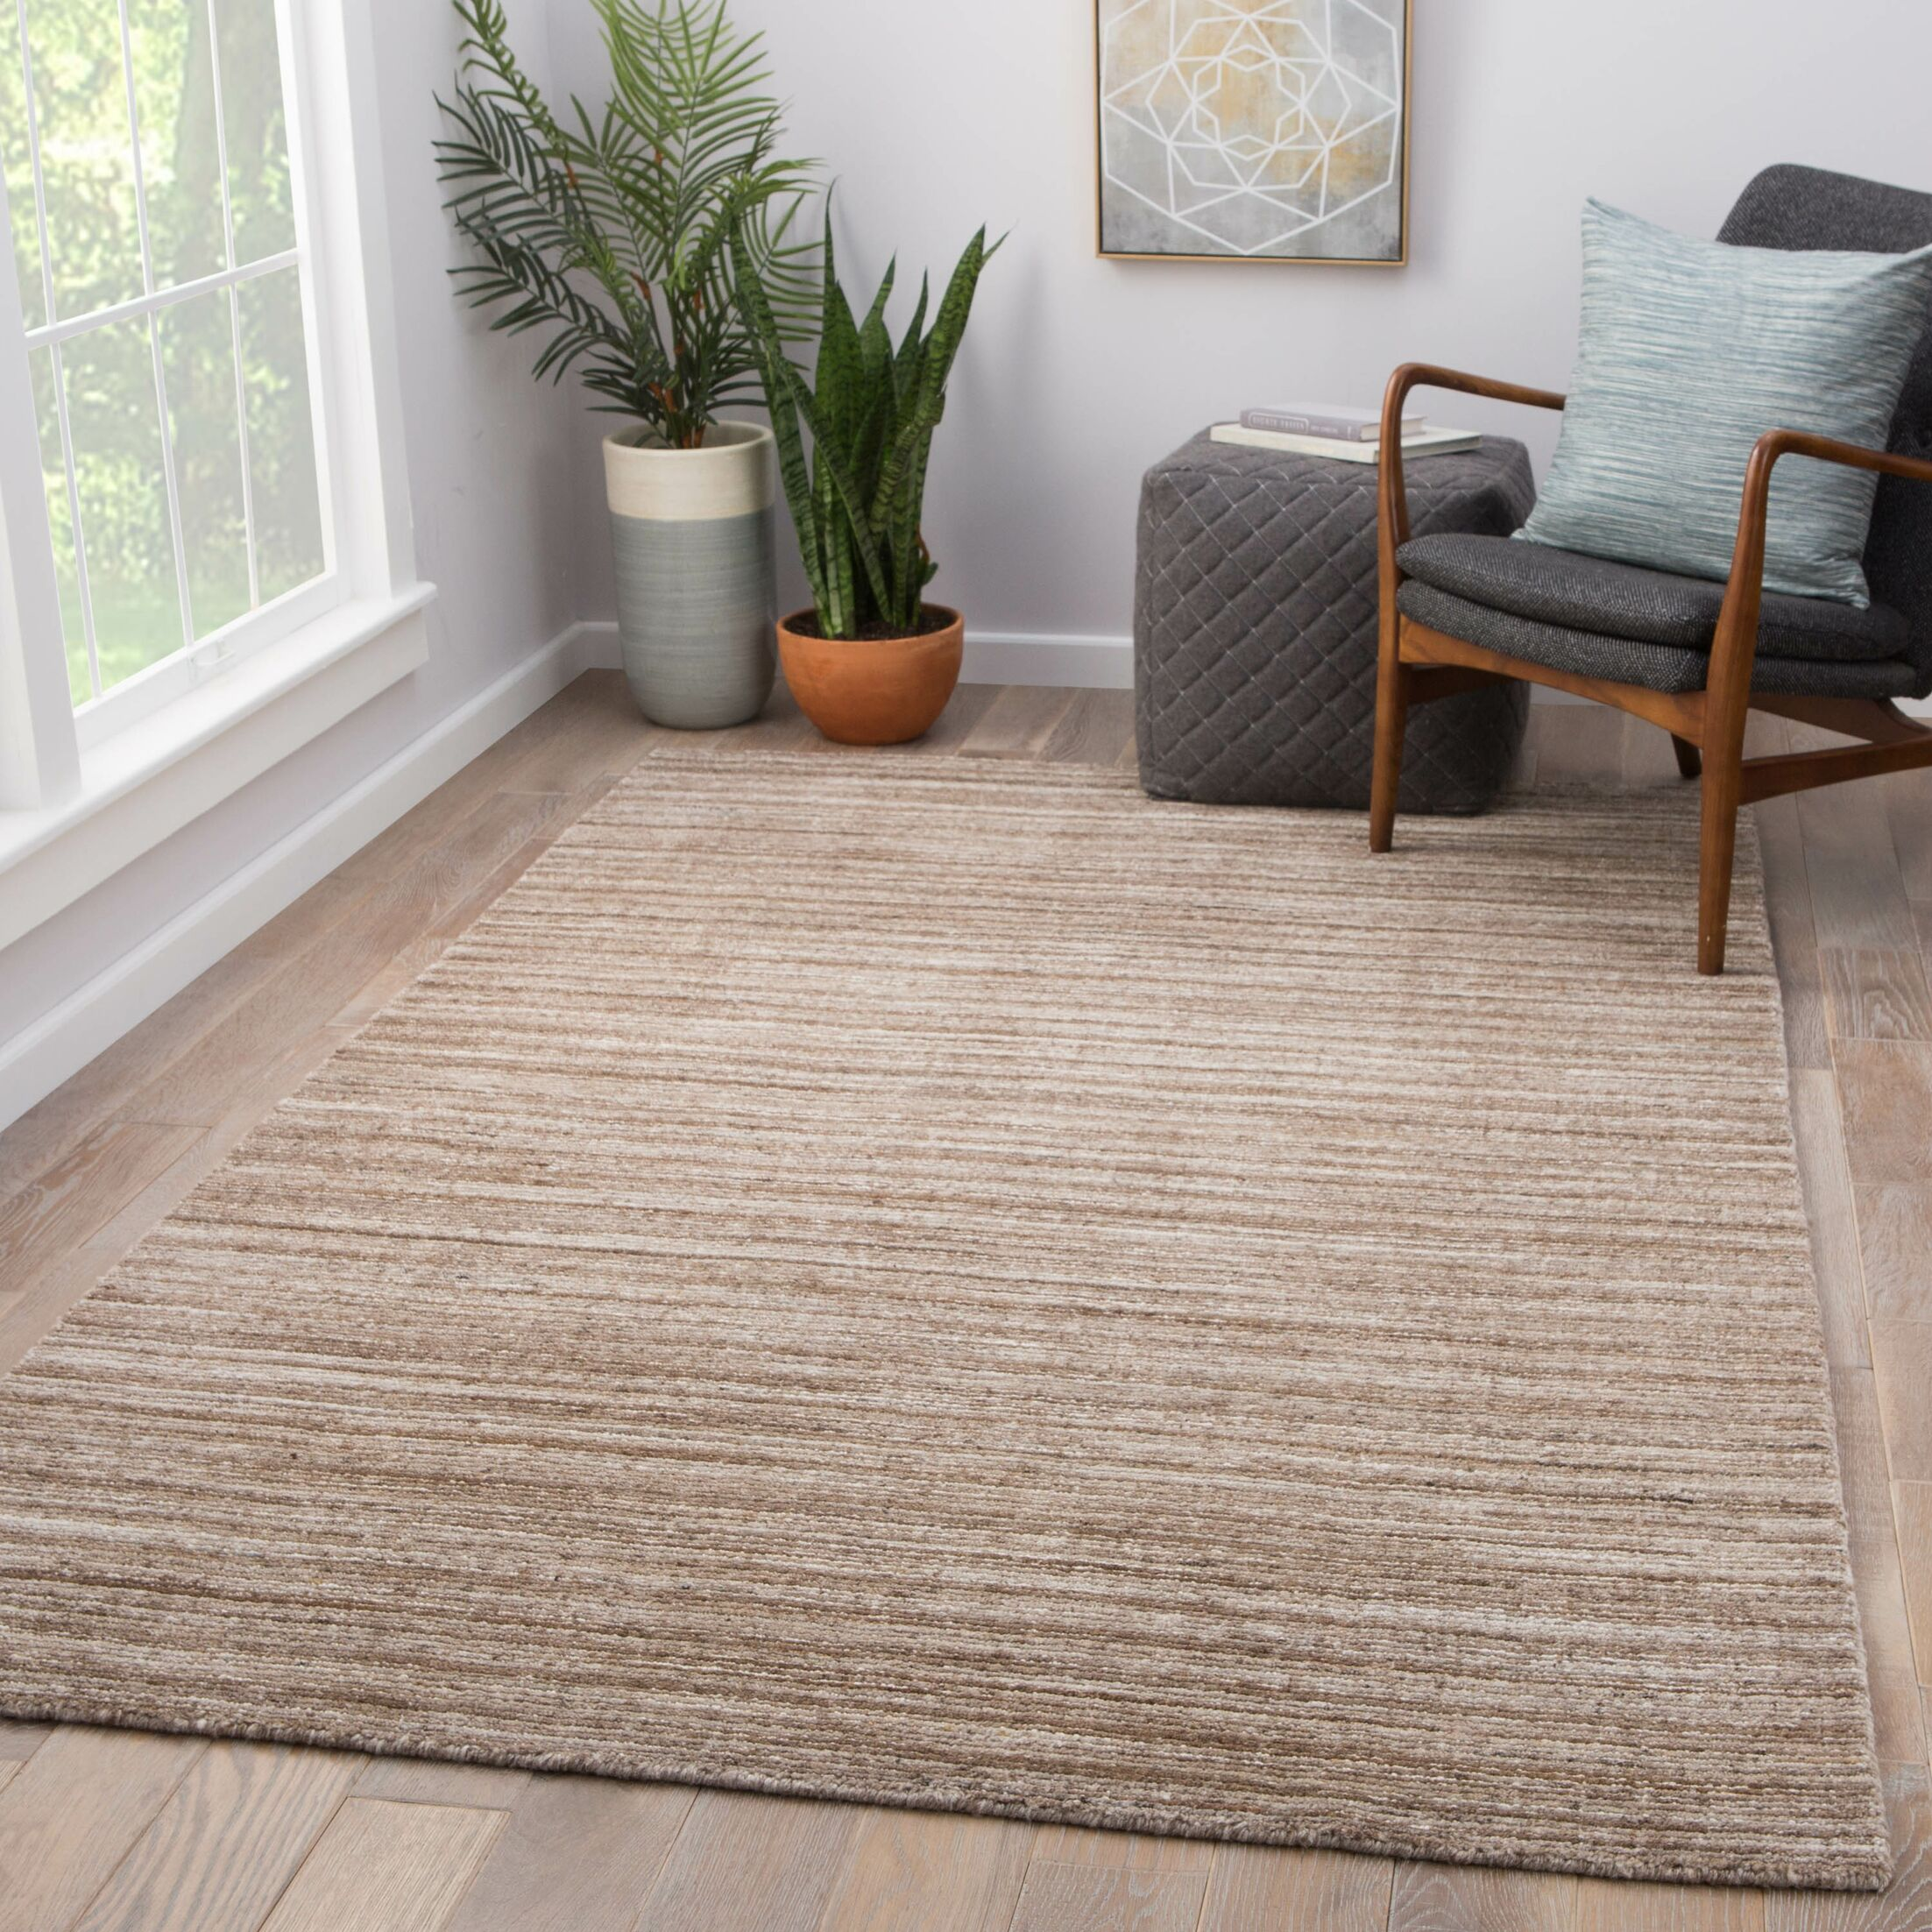 Hadrian Hand-Loomed Wool Taupe Area Rug Rug Size: Rectangle 8' x 11'